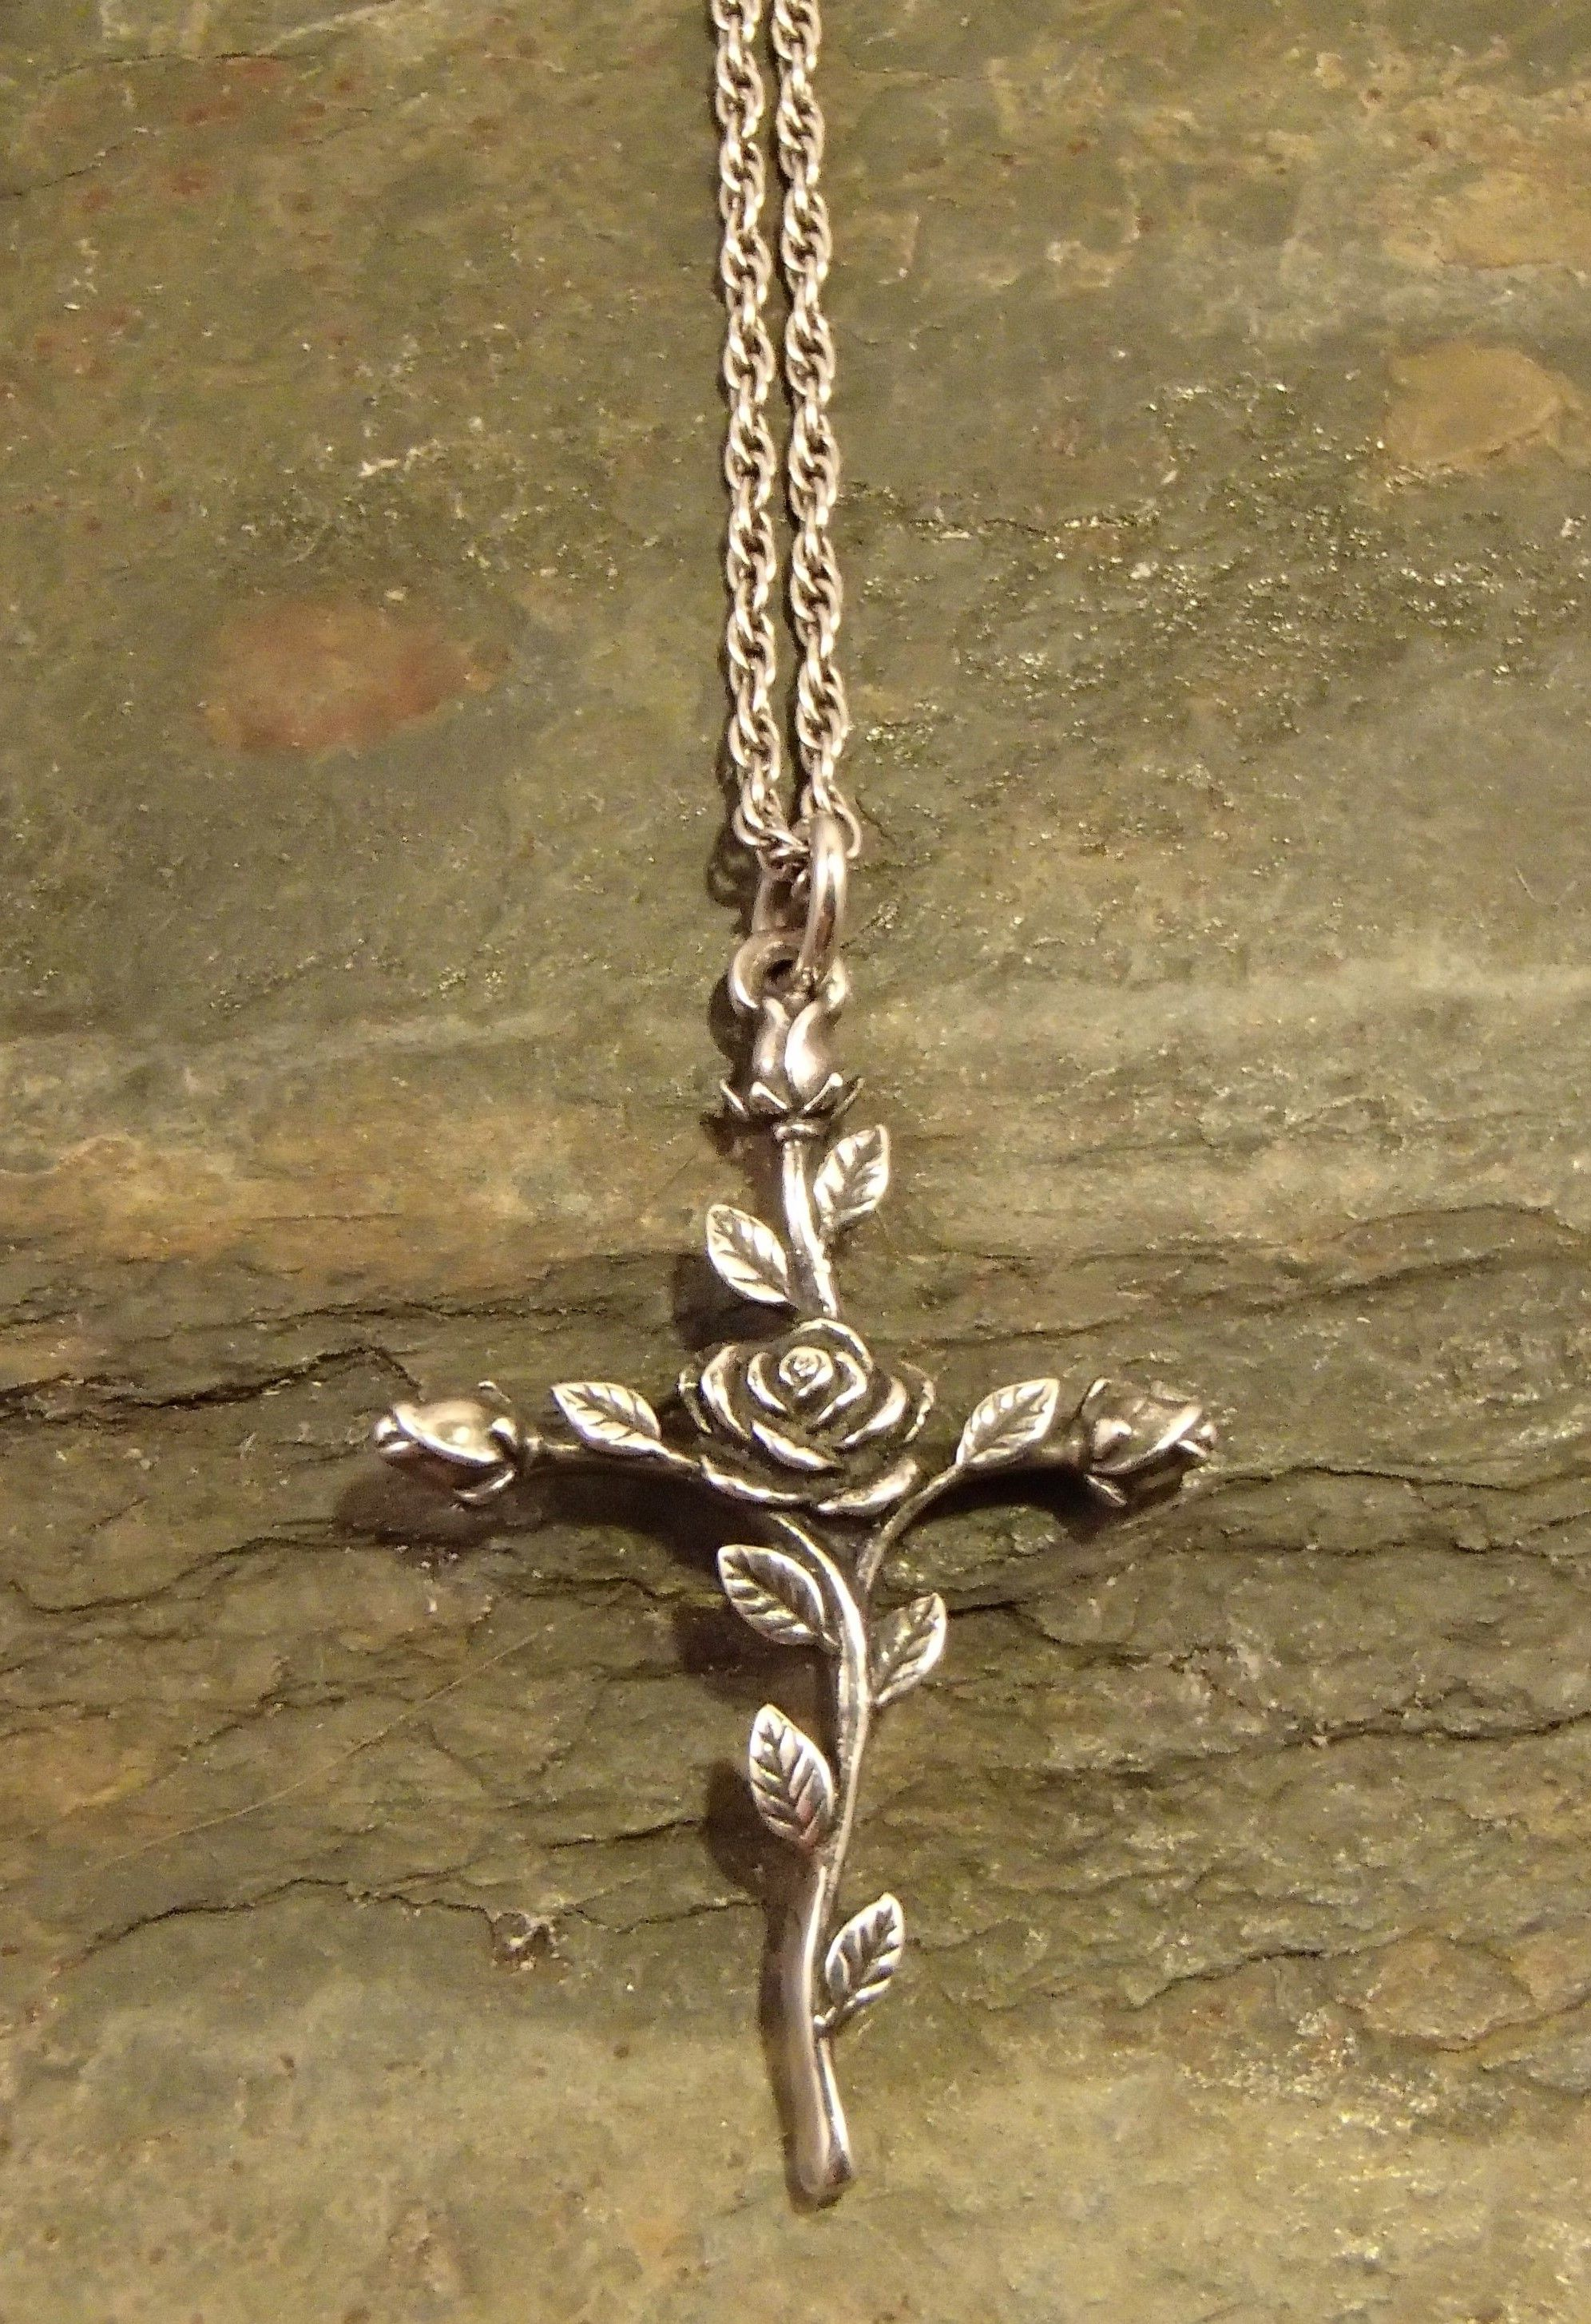 ad02effbbb877 James Avery sterling silver rose cross necklace #emmeann ...